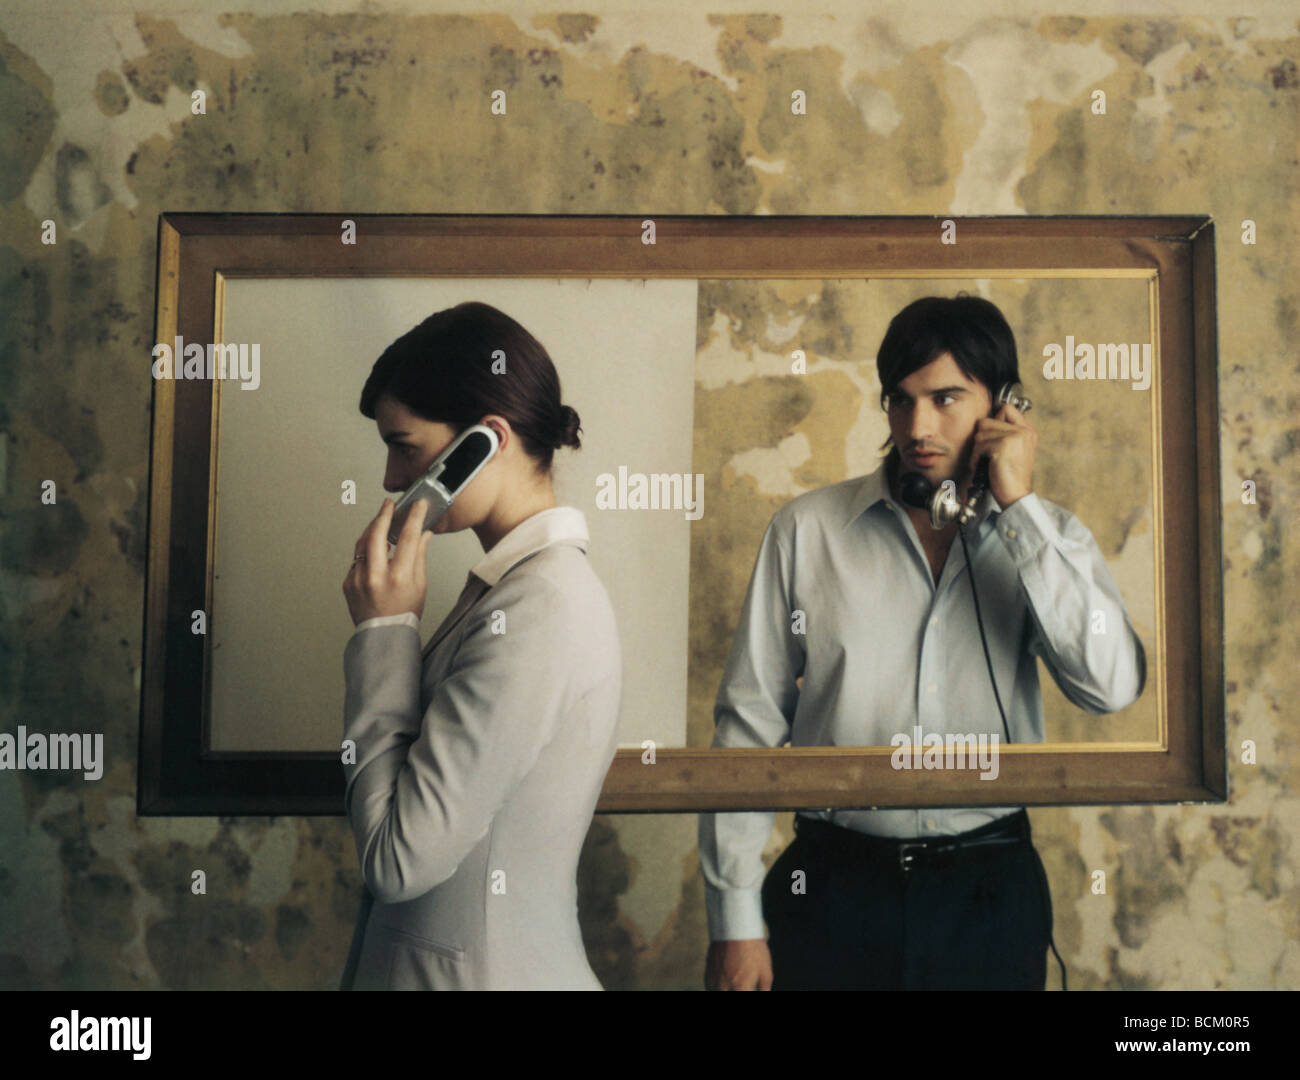 Standing on either side of picture frame, woman using cell phone while man using old-fashioned landline phone watches - Stock Image